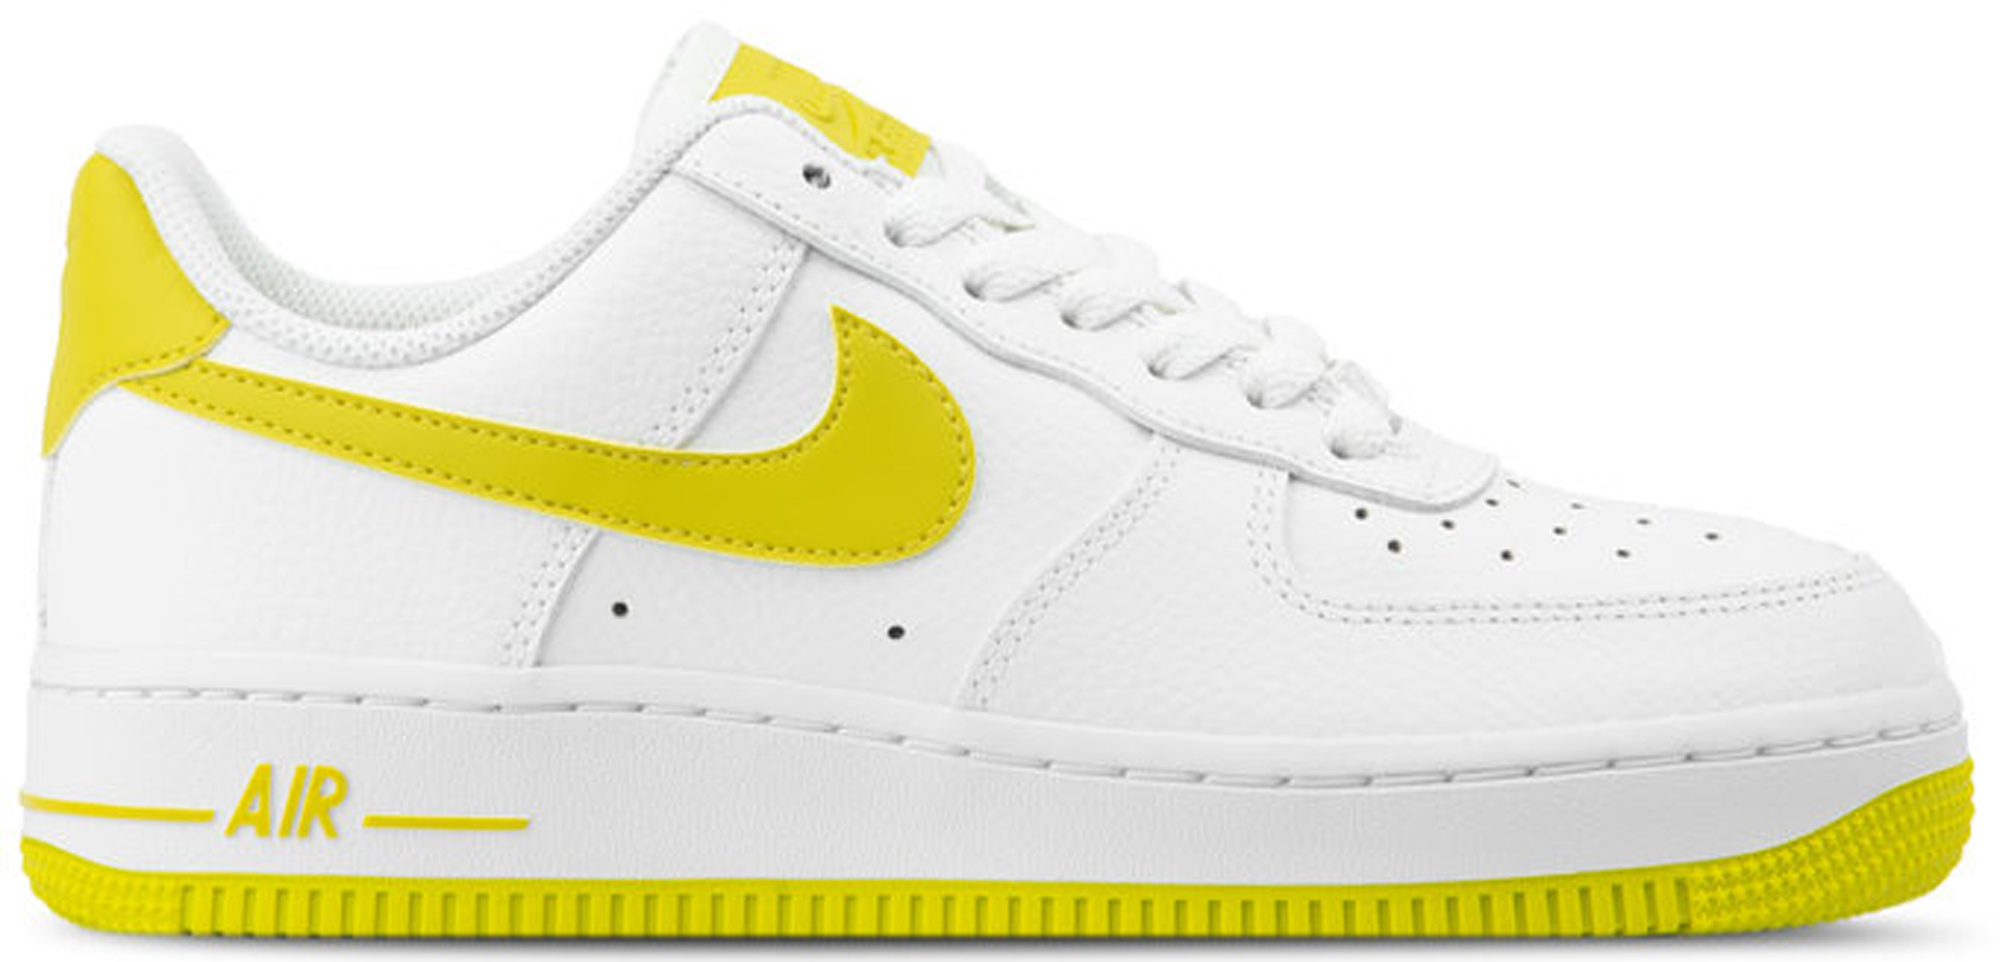 Nike Air Force 1 Low Patent White